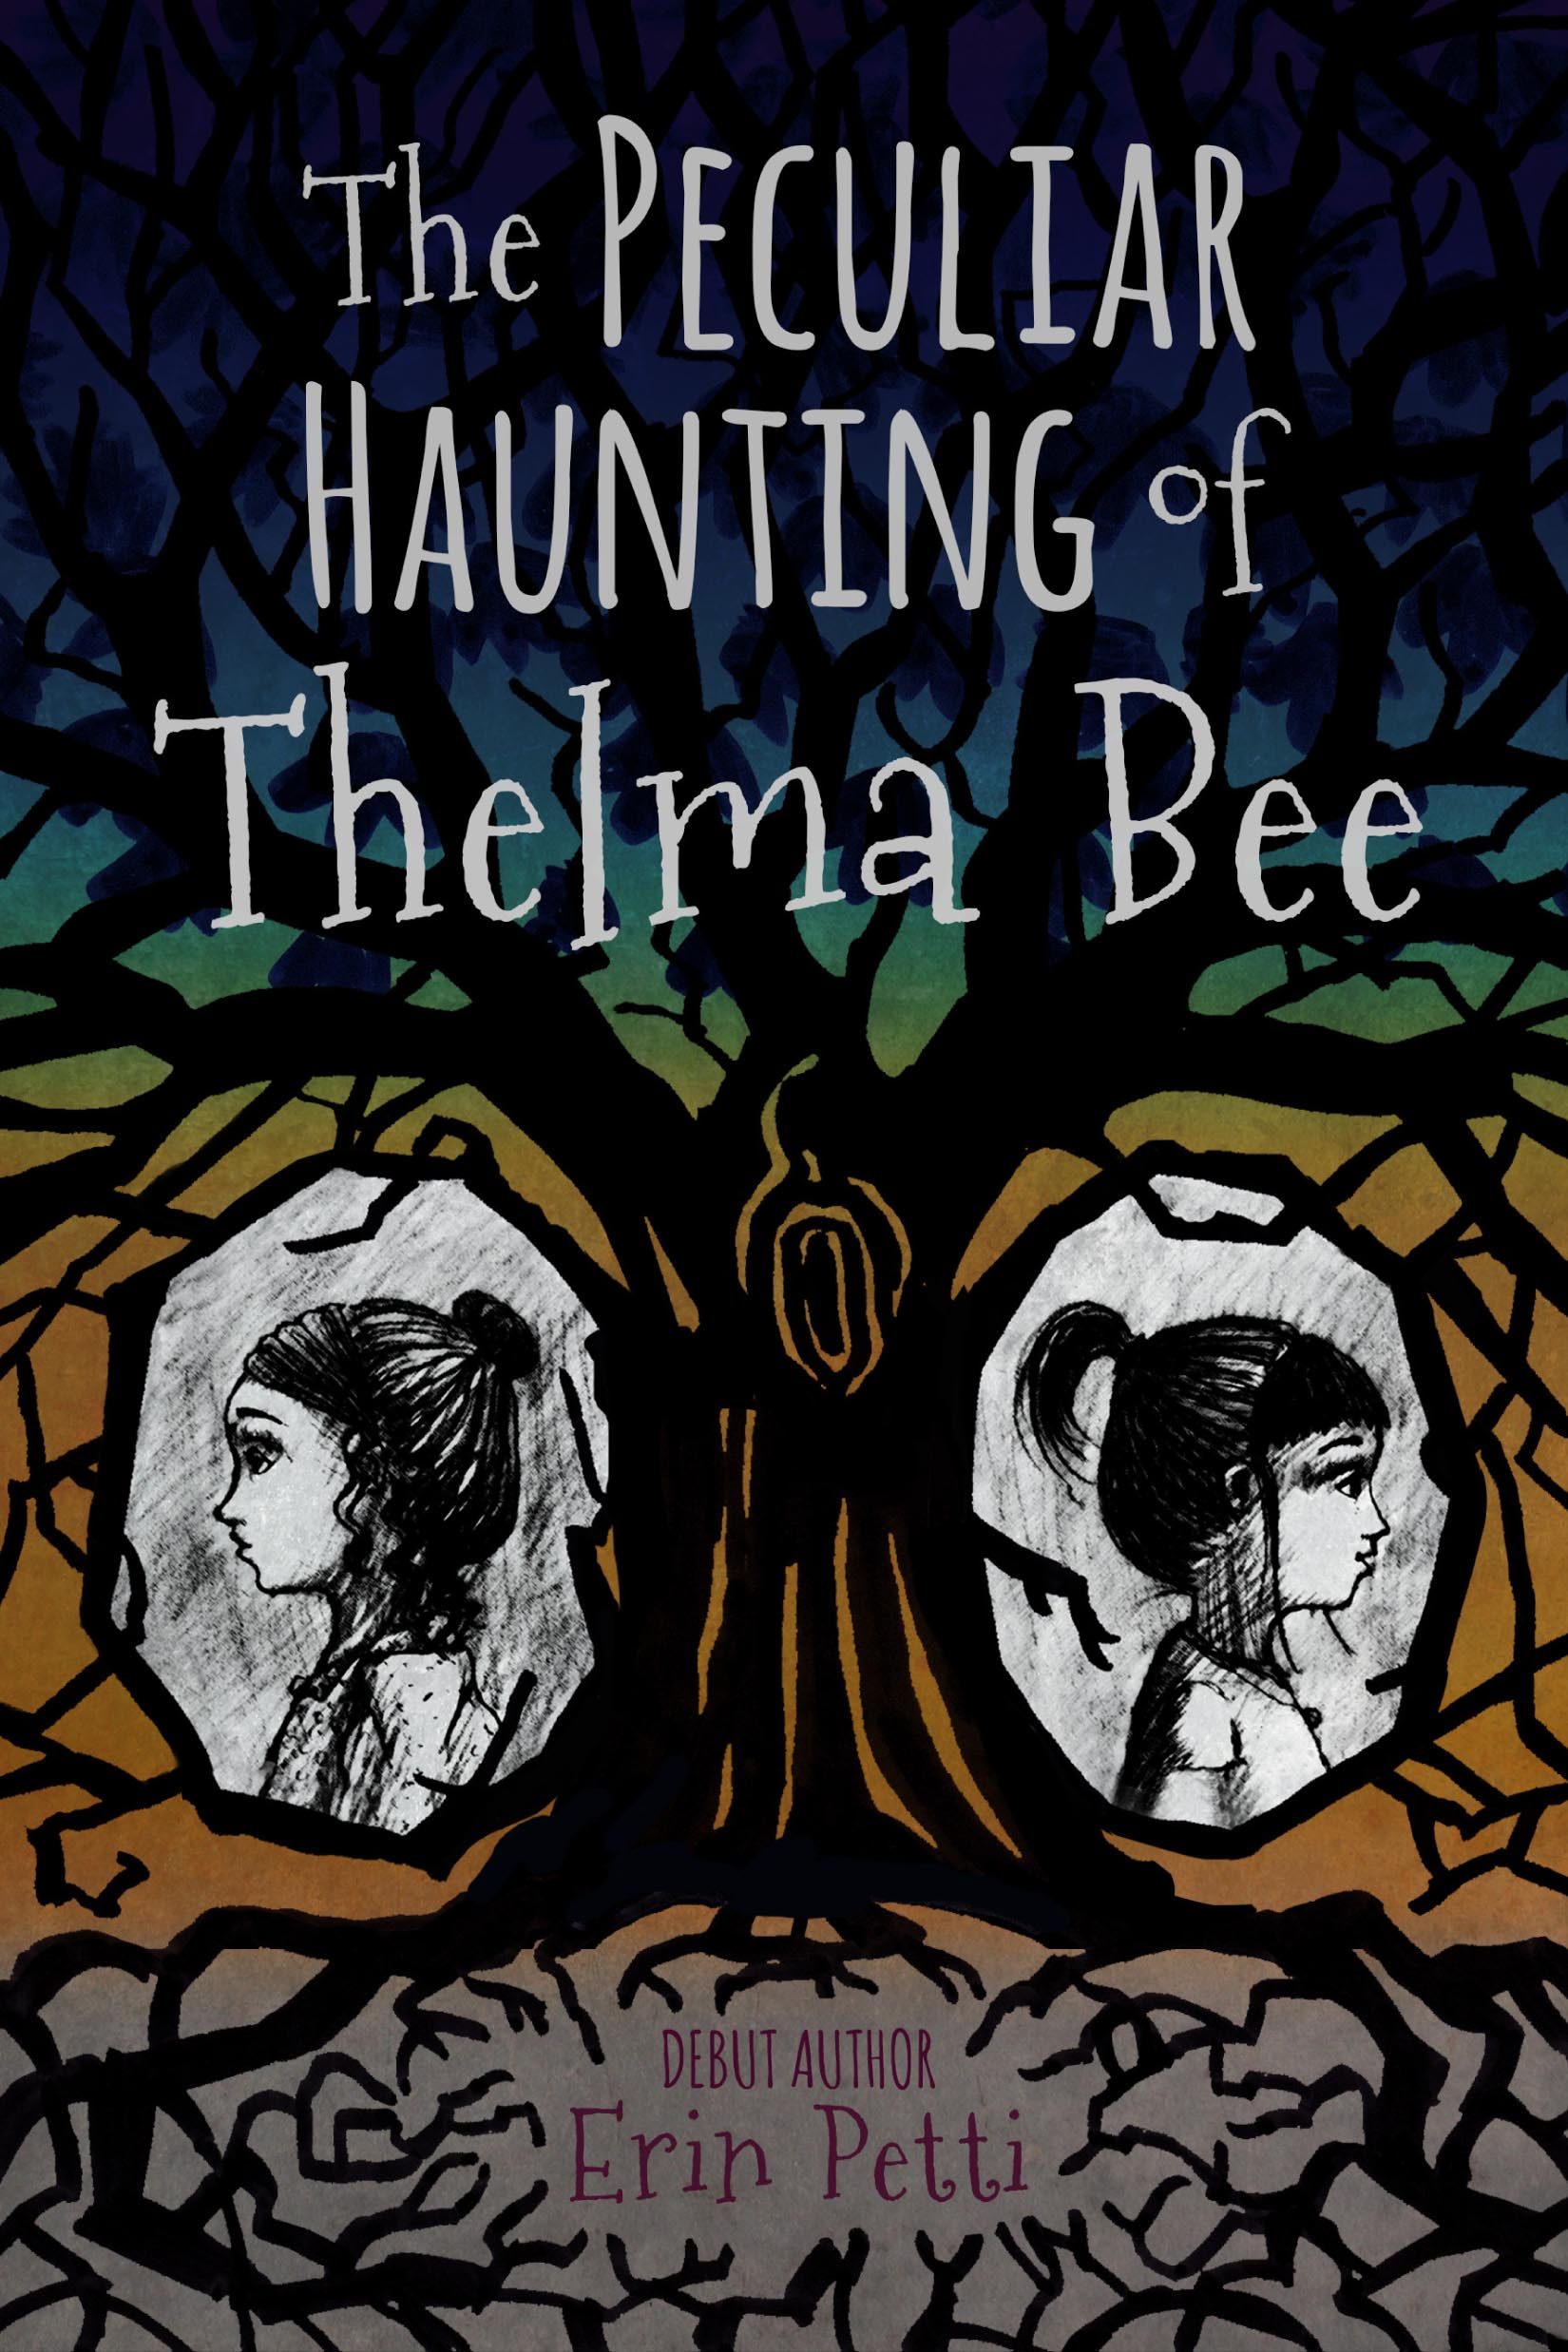 MG Book Review: The Peculiar Haunting of Thelma Bee by Erin Petti